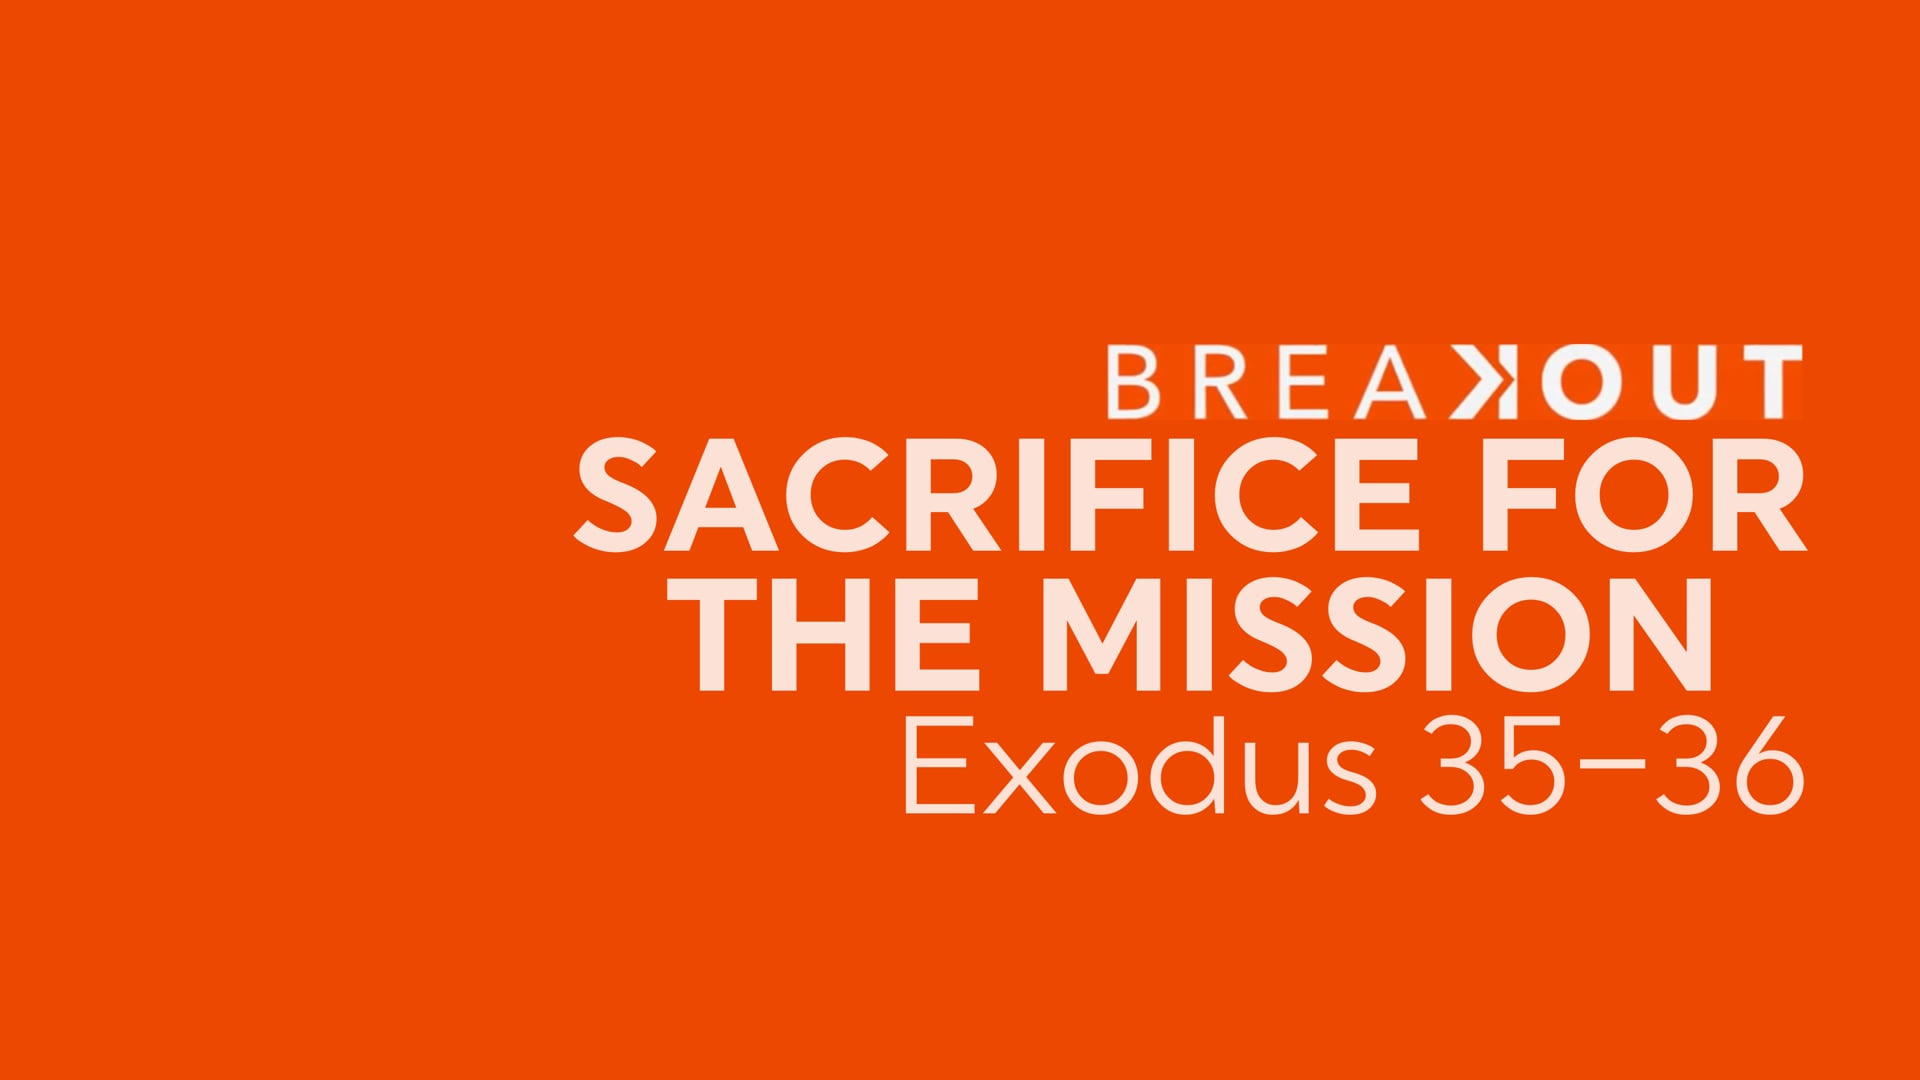 Sacrifice For The Mission - January 24, 2021